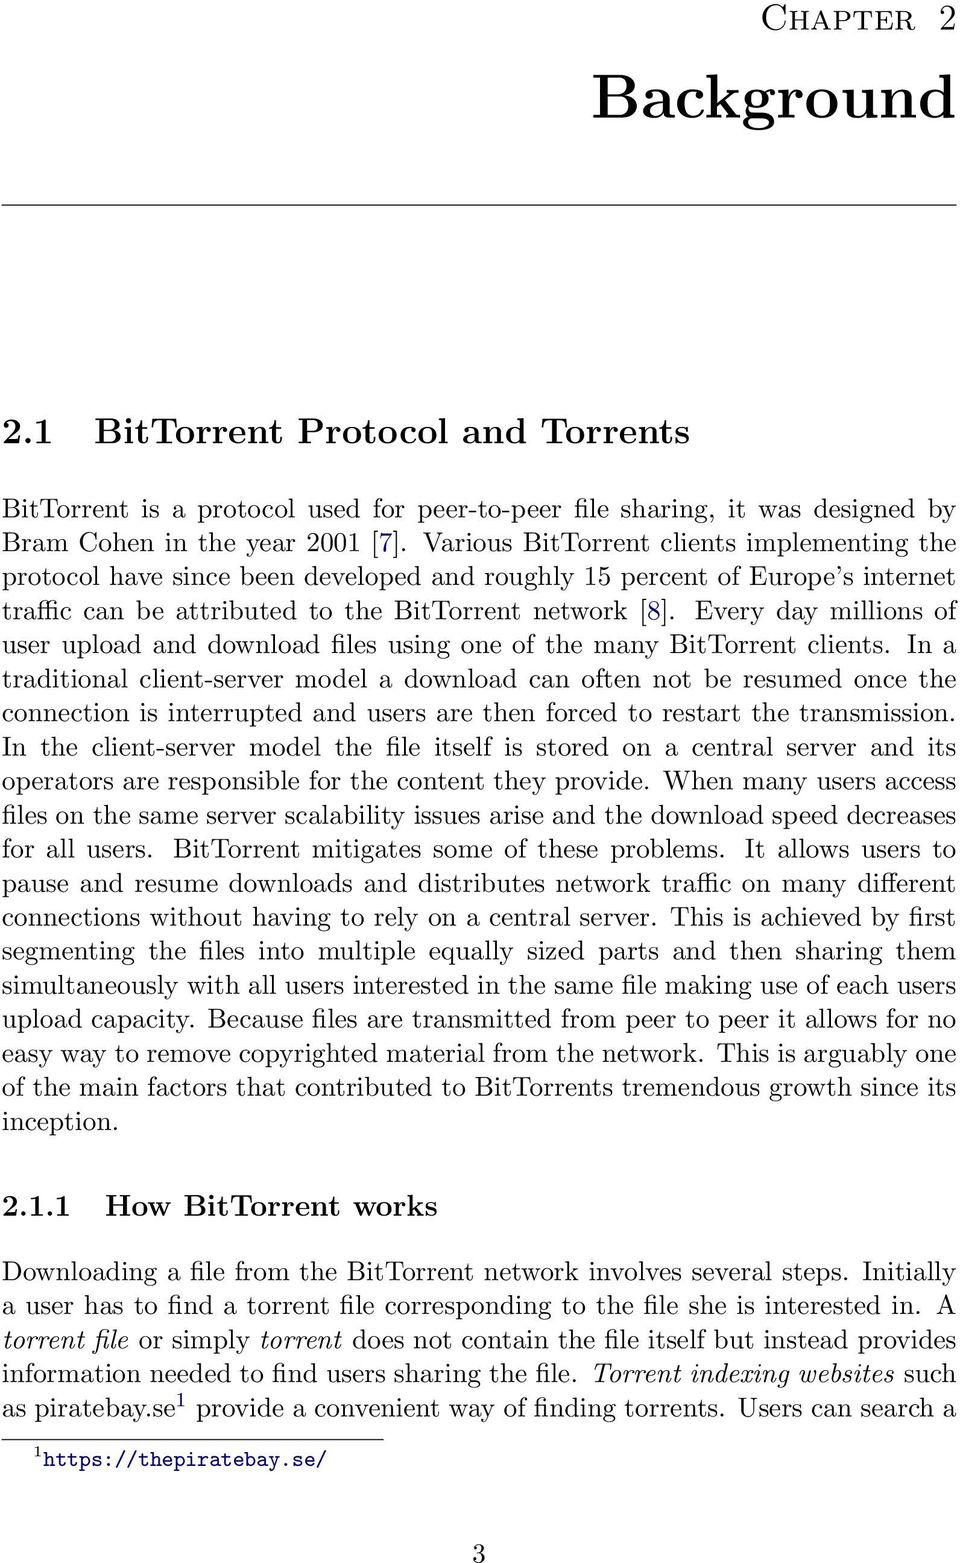 Every day millions of user upload and download files using one of the many BitTorrent clients.